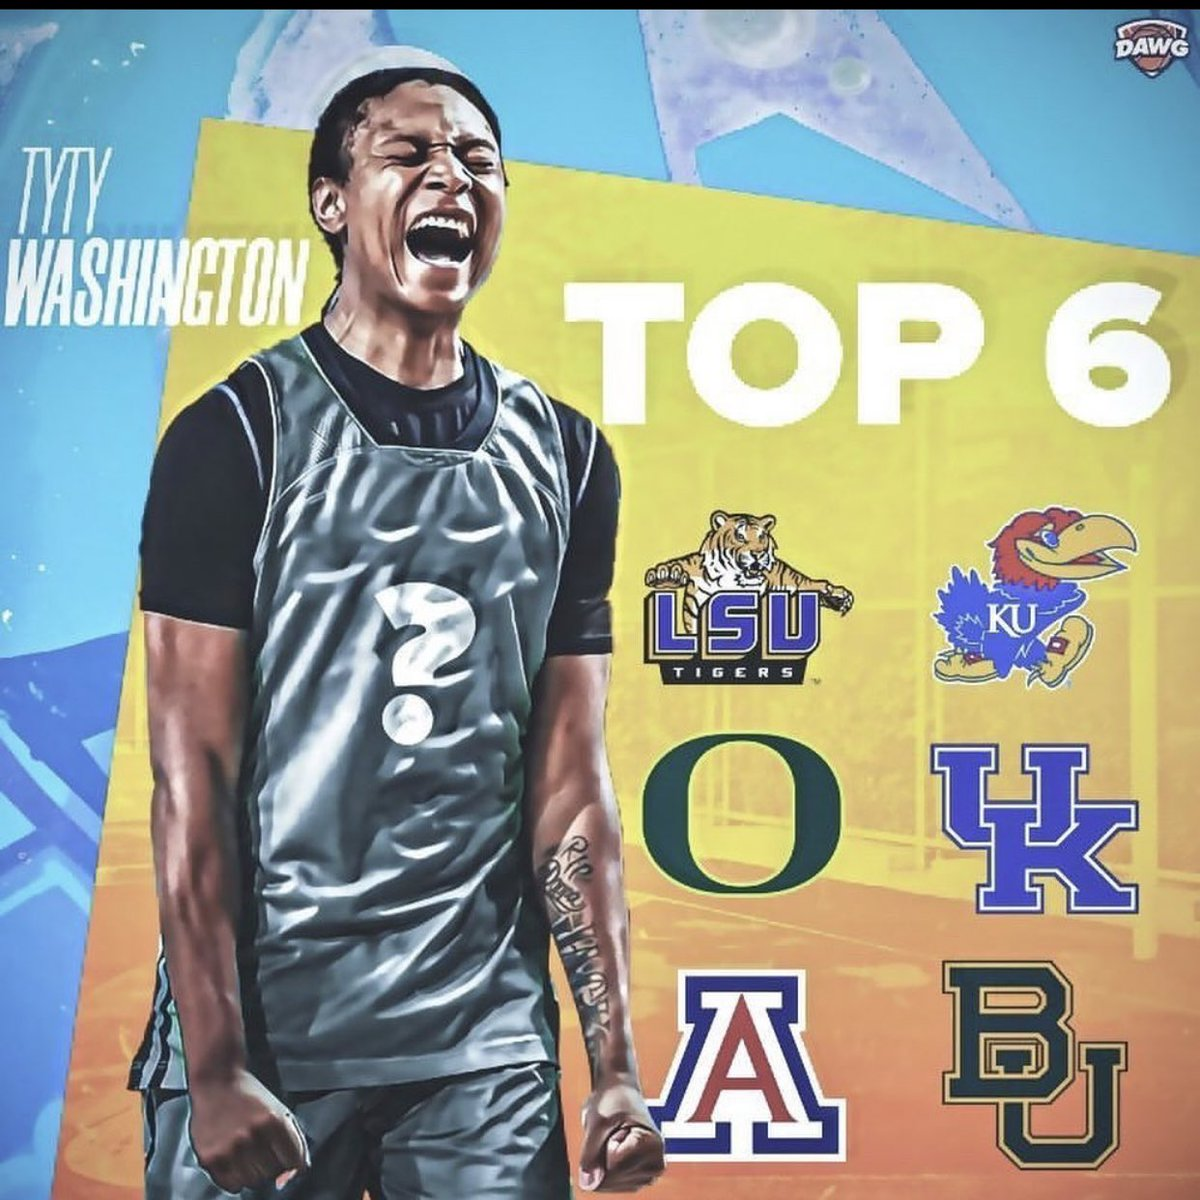 No surprise, UK is in the final 6 for TyTy Washington